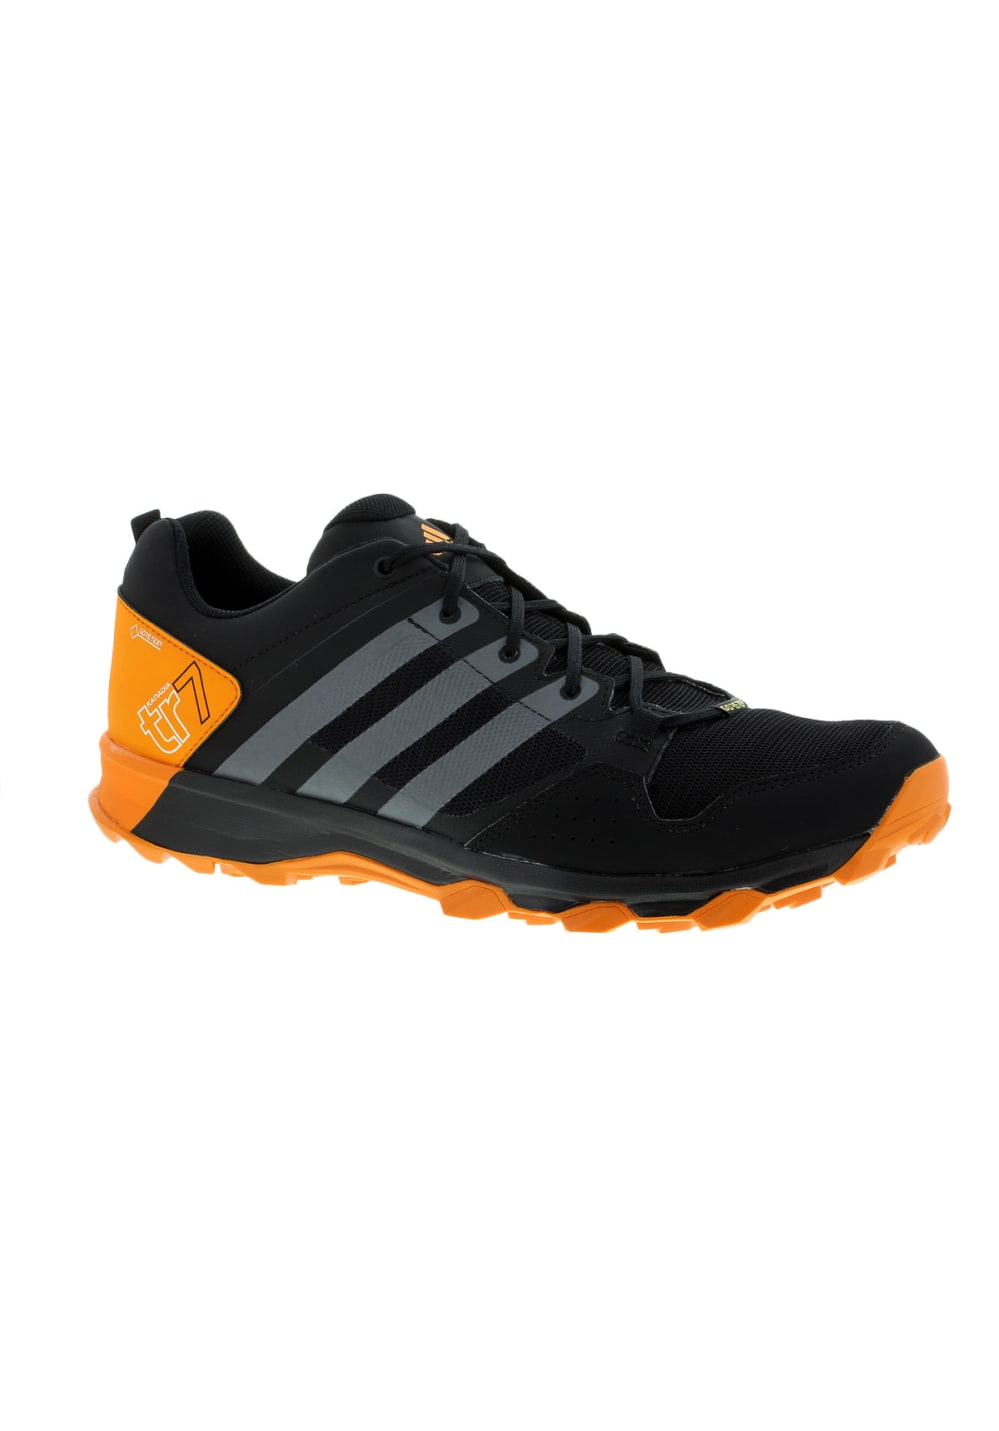 aa243630096 Next. -3%. This product is currently out of stock. adidas. Kanadia 7 TR GTX  - Running shoes ...